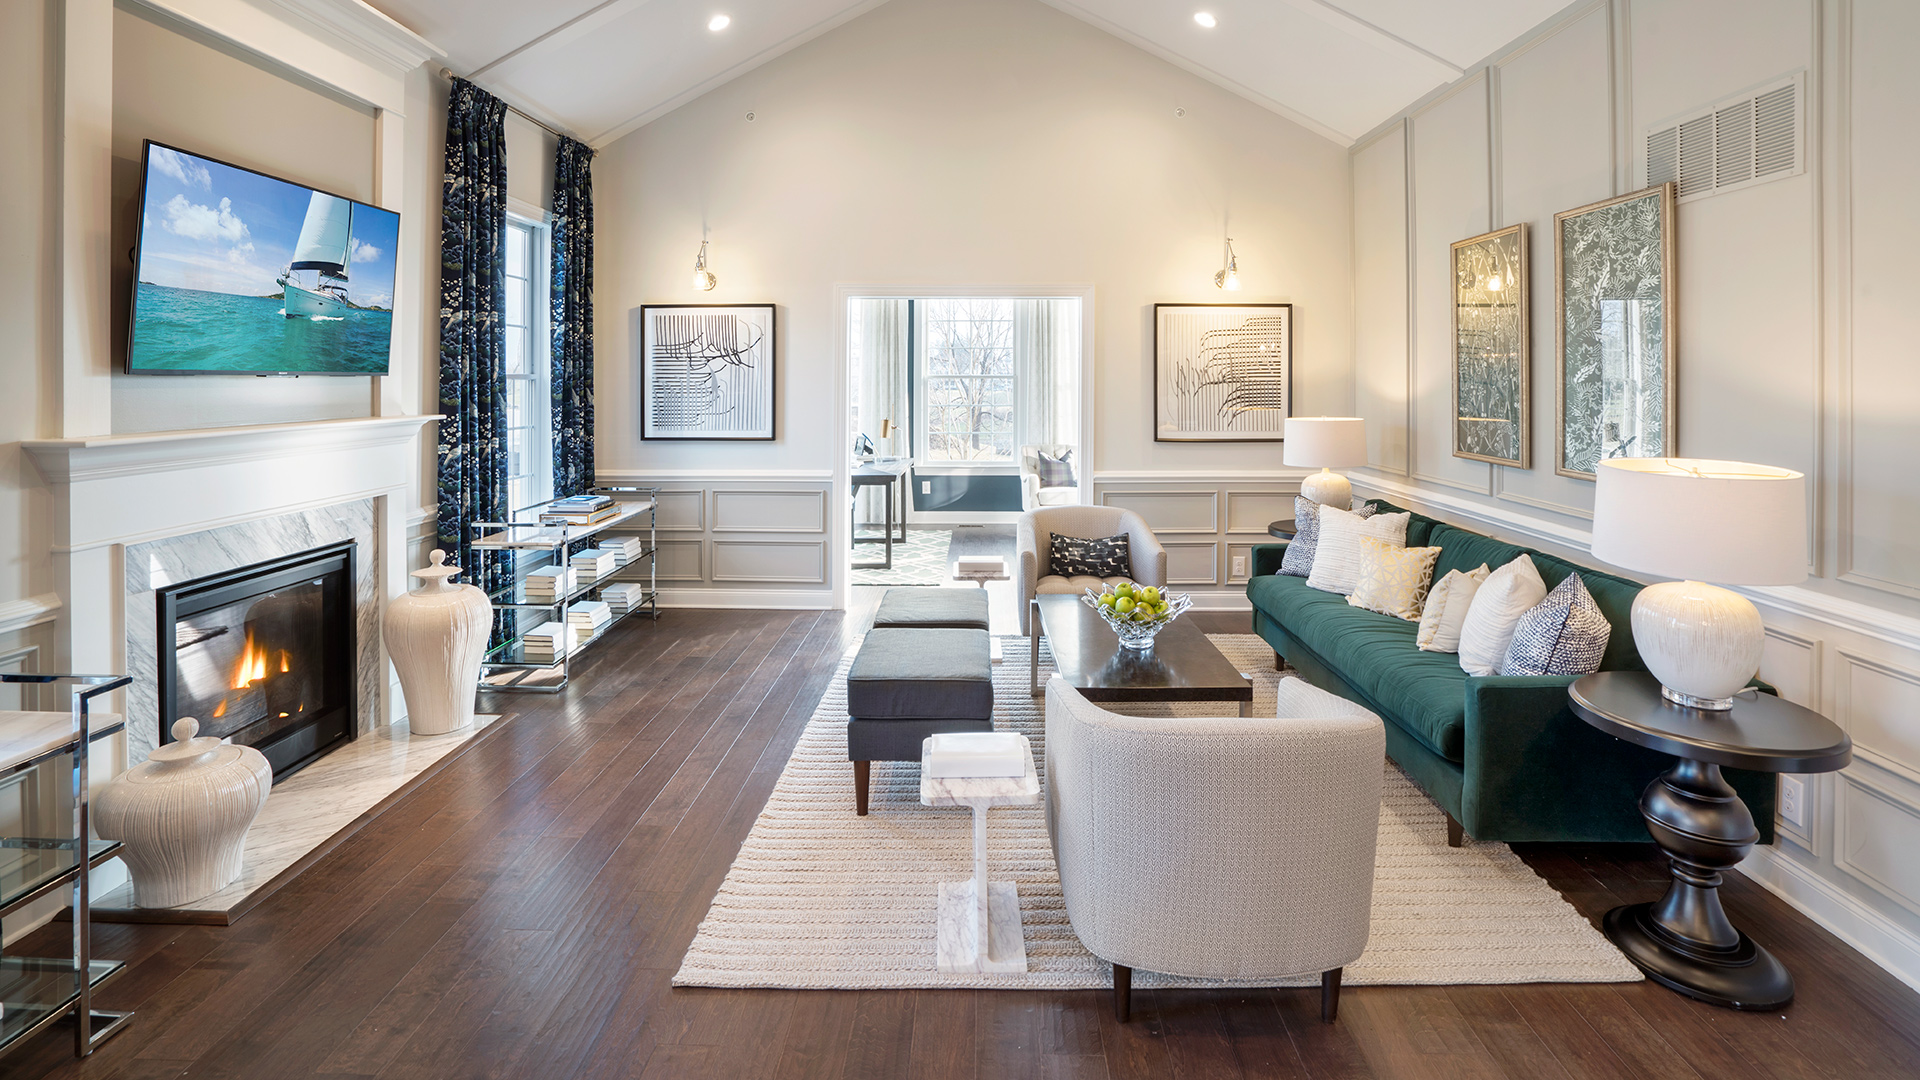 Groovy Newtown Square Pa Carriage Homes For Sale Liseter The Home Interior And Landscaping Ologienasavecom